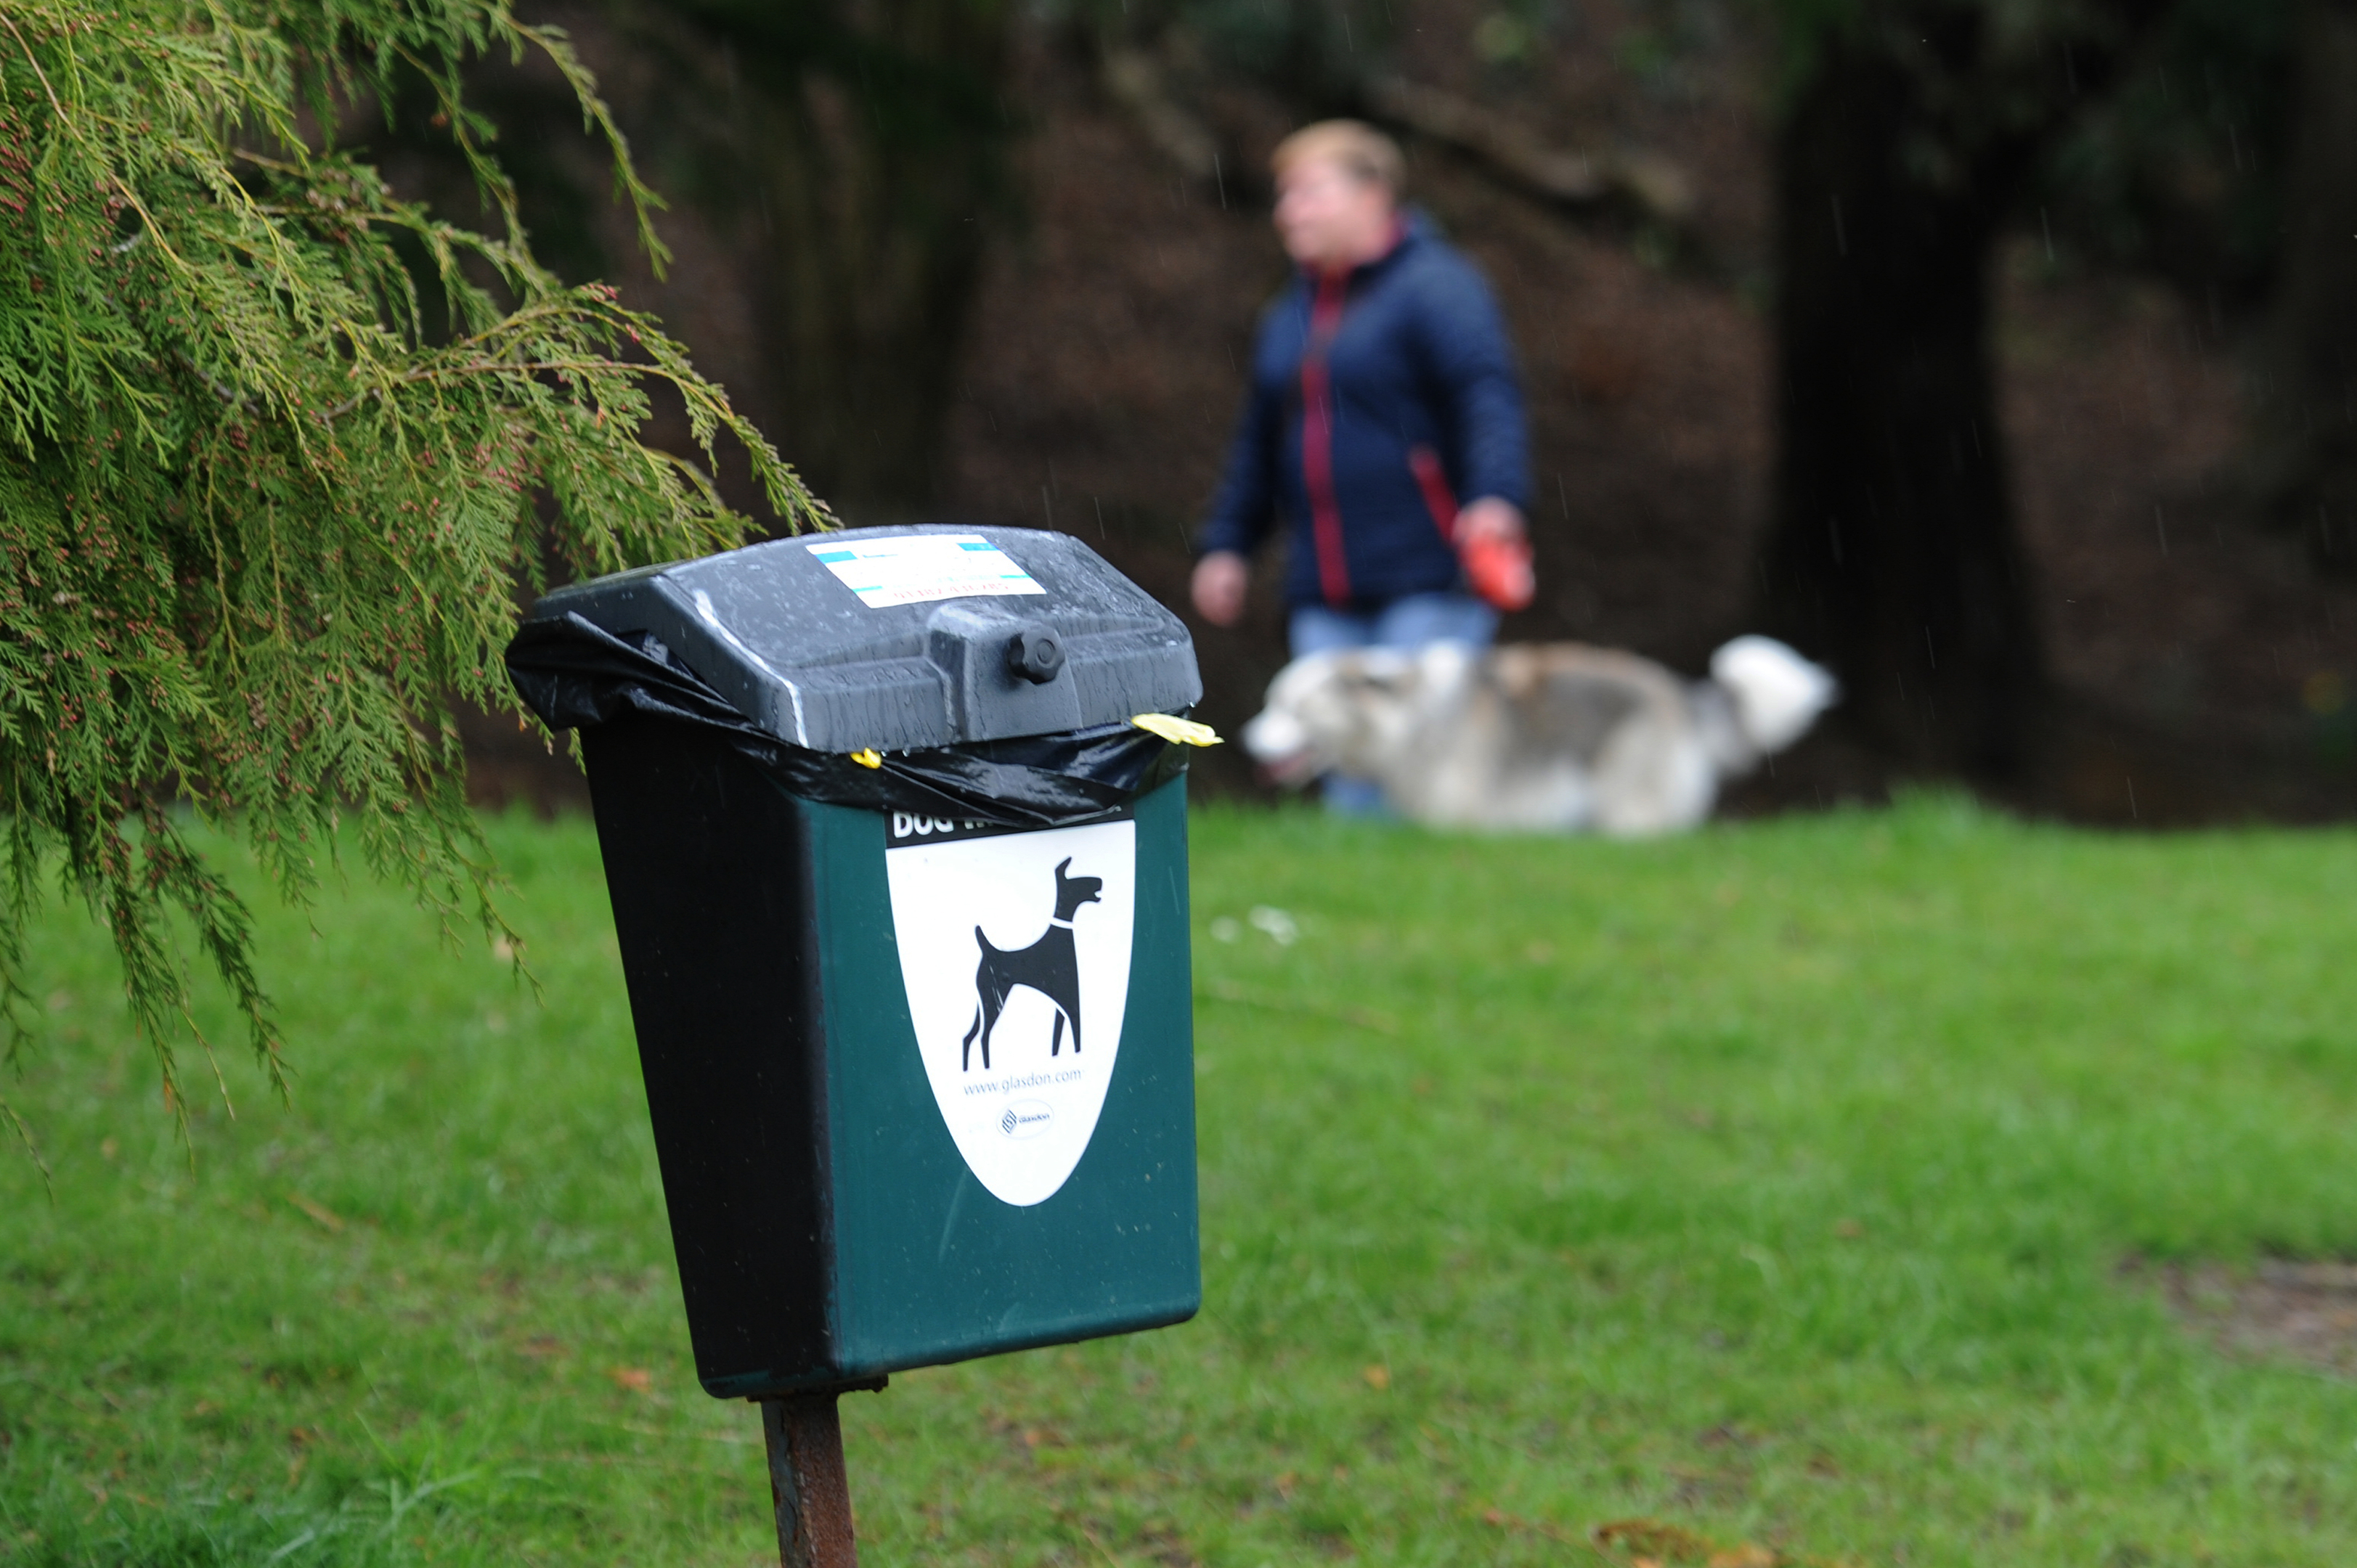 No dog fouling fines have been issued in Aberdeenshire since 2016.